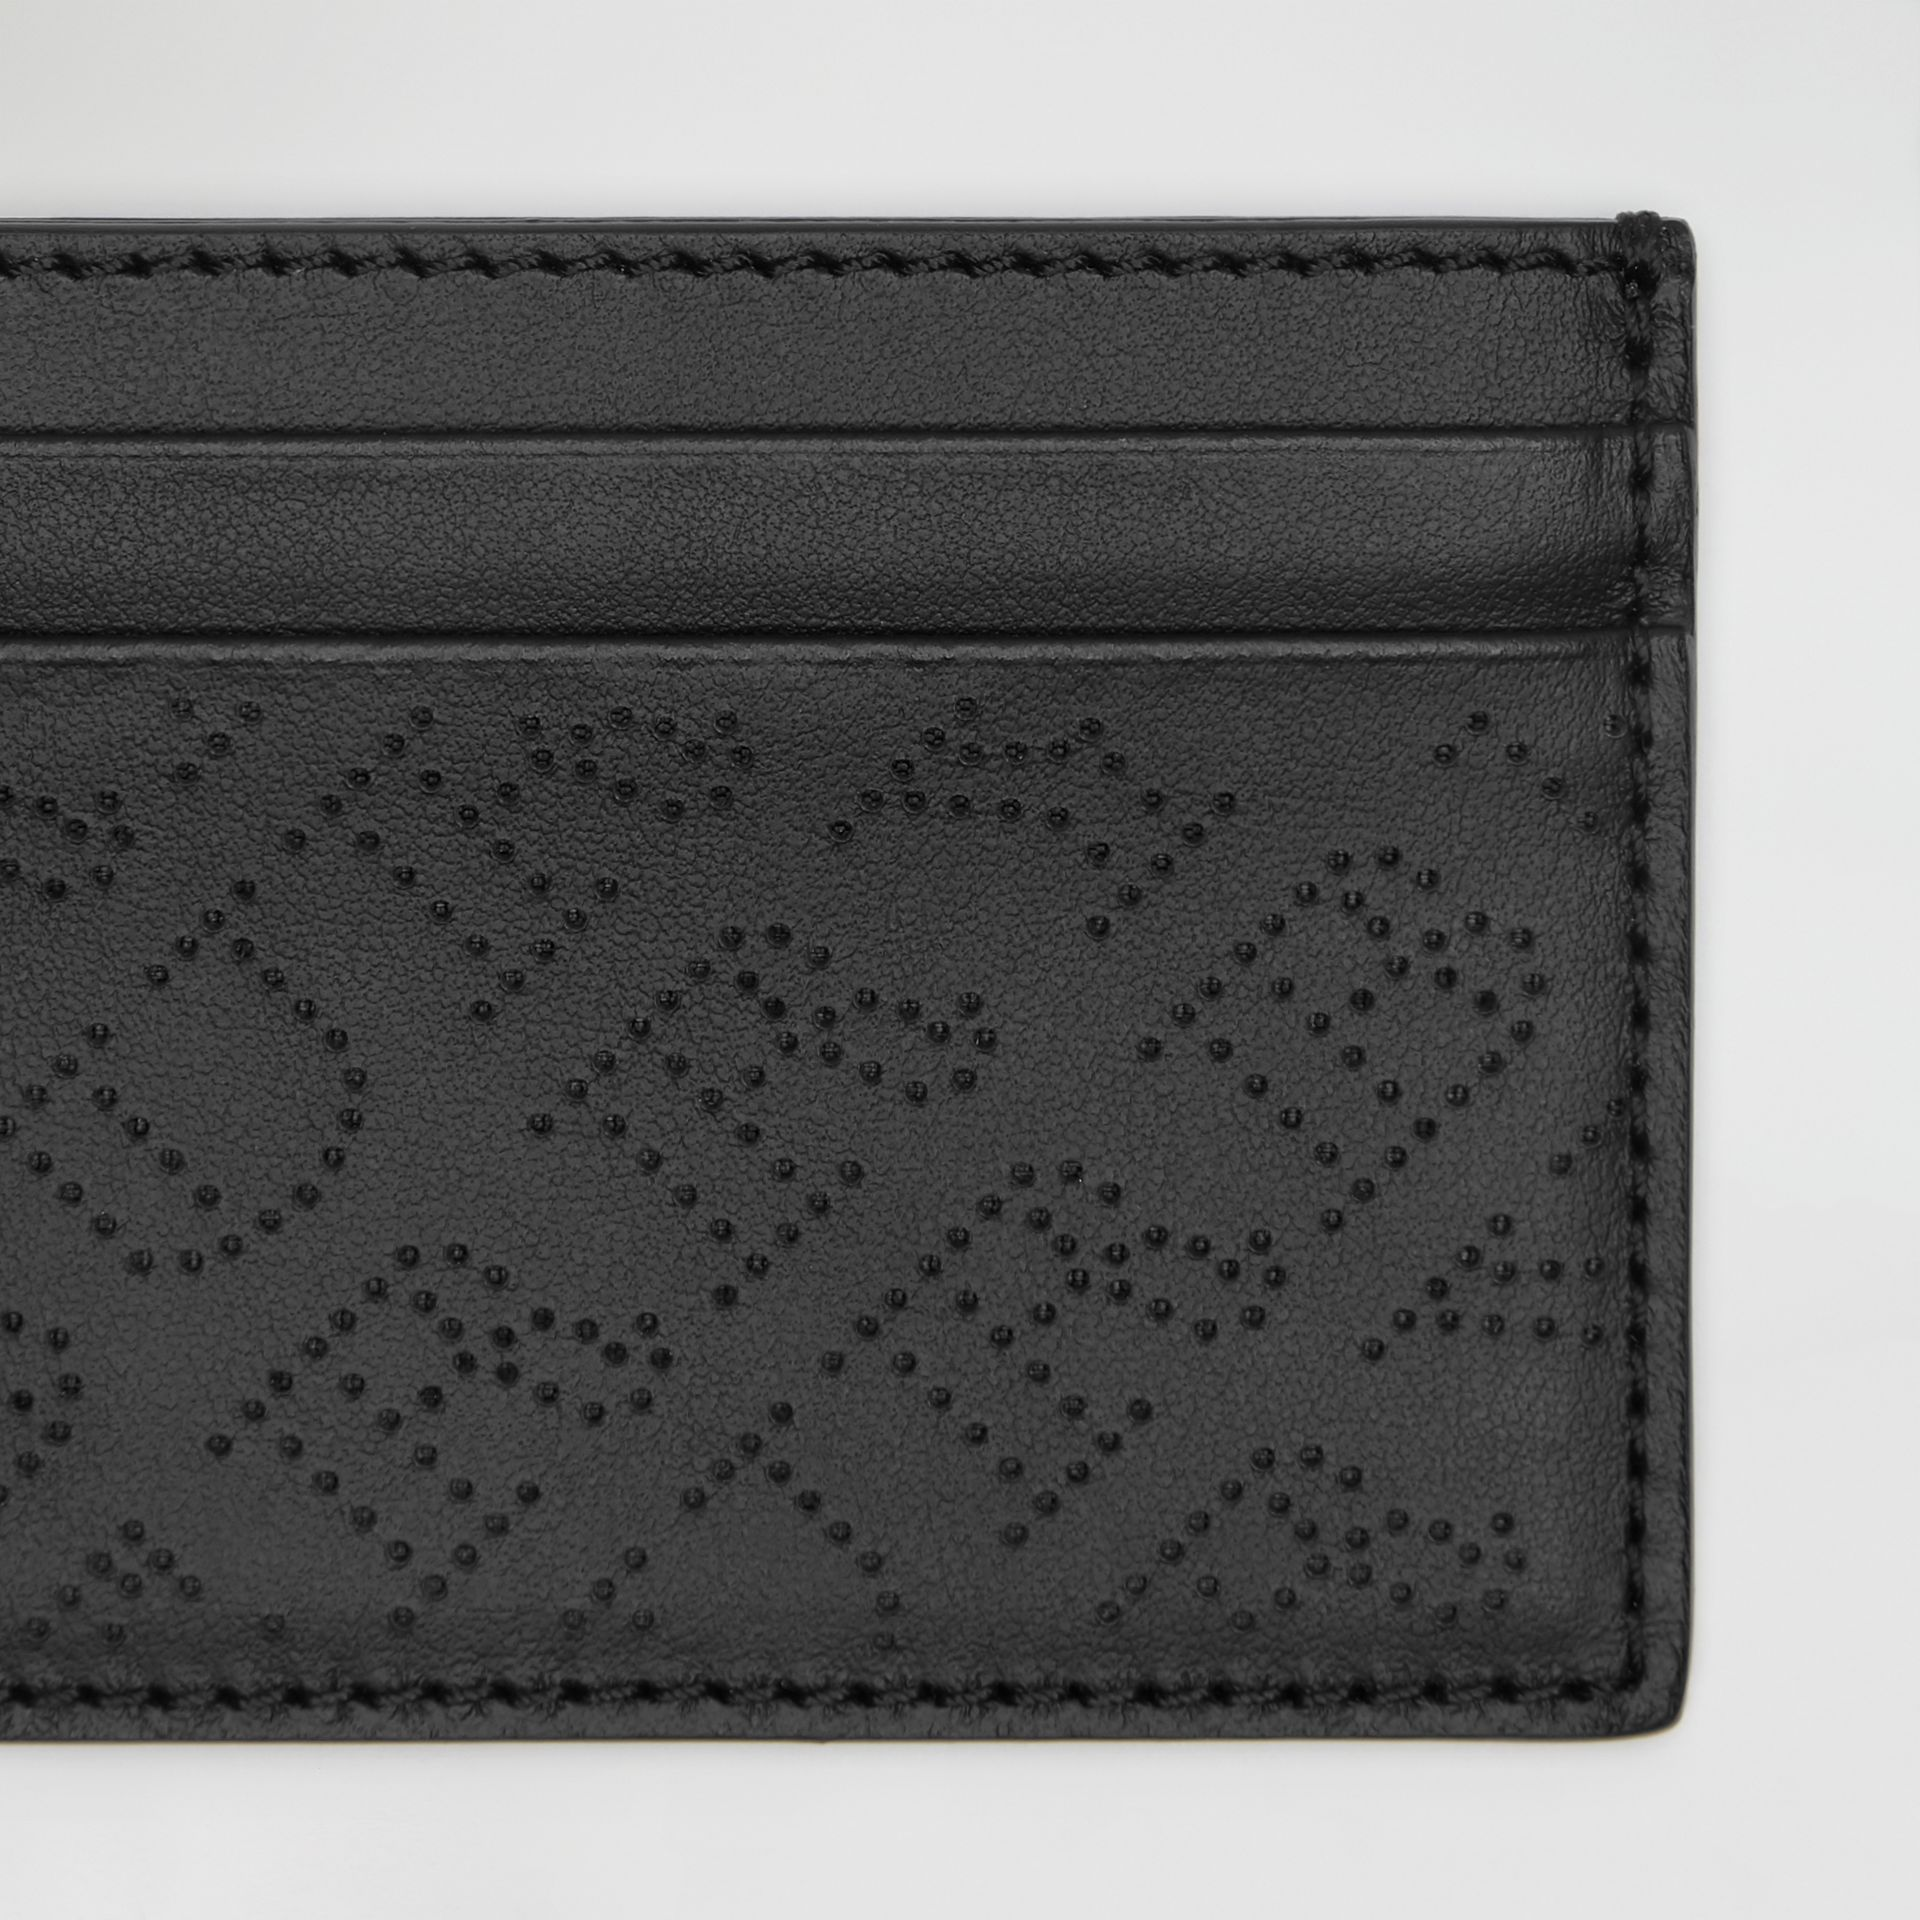 Perforated Logo Leather Card Case in Black - Women | Burberry Australia - gallery image 1